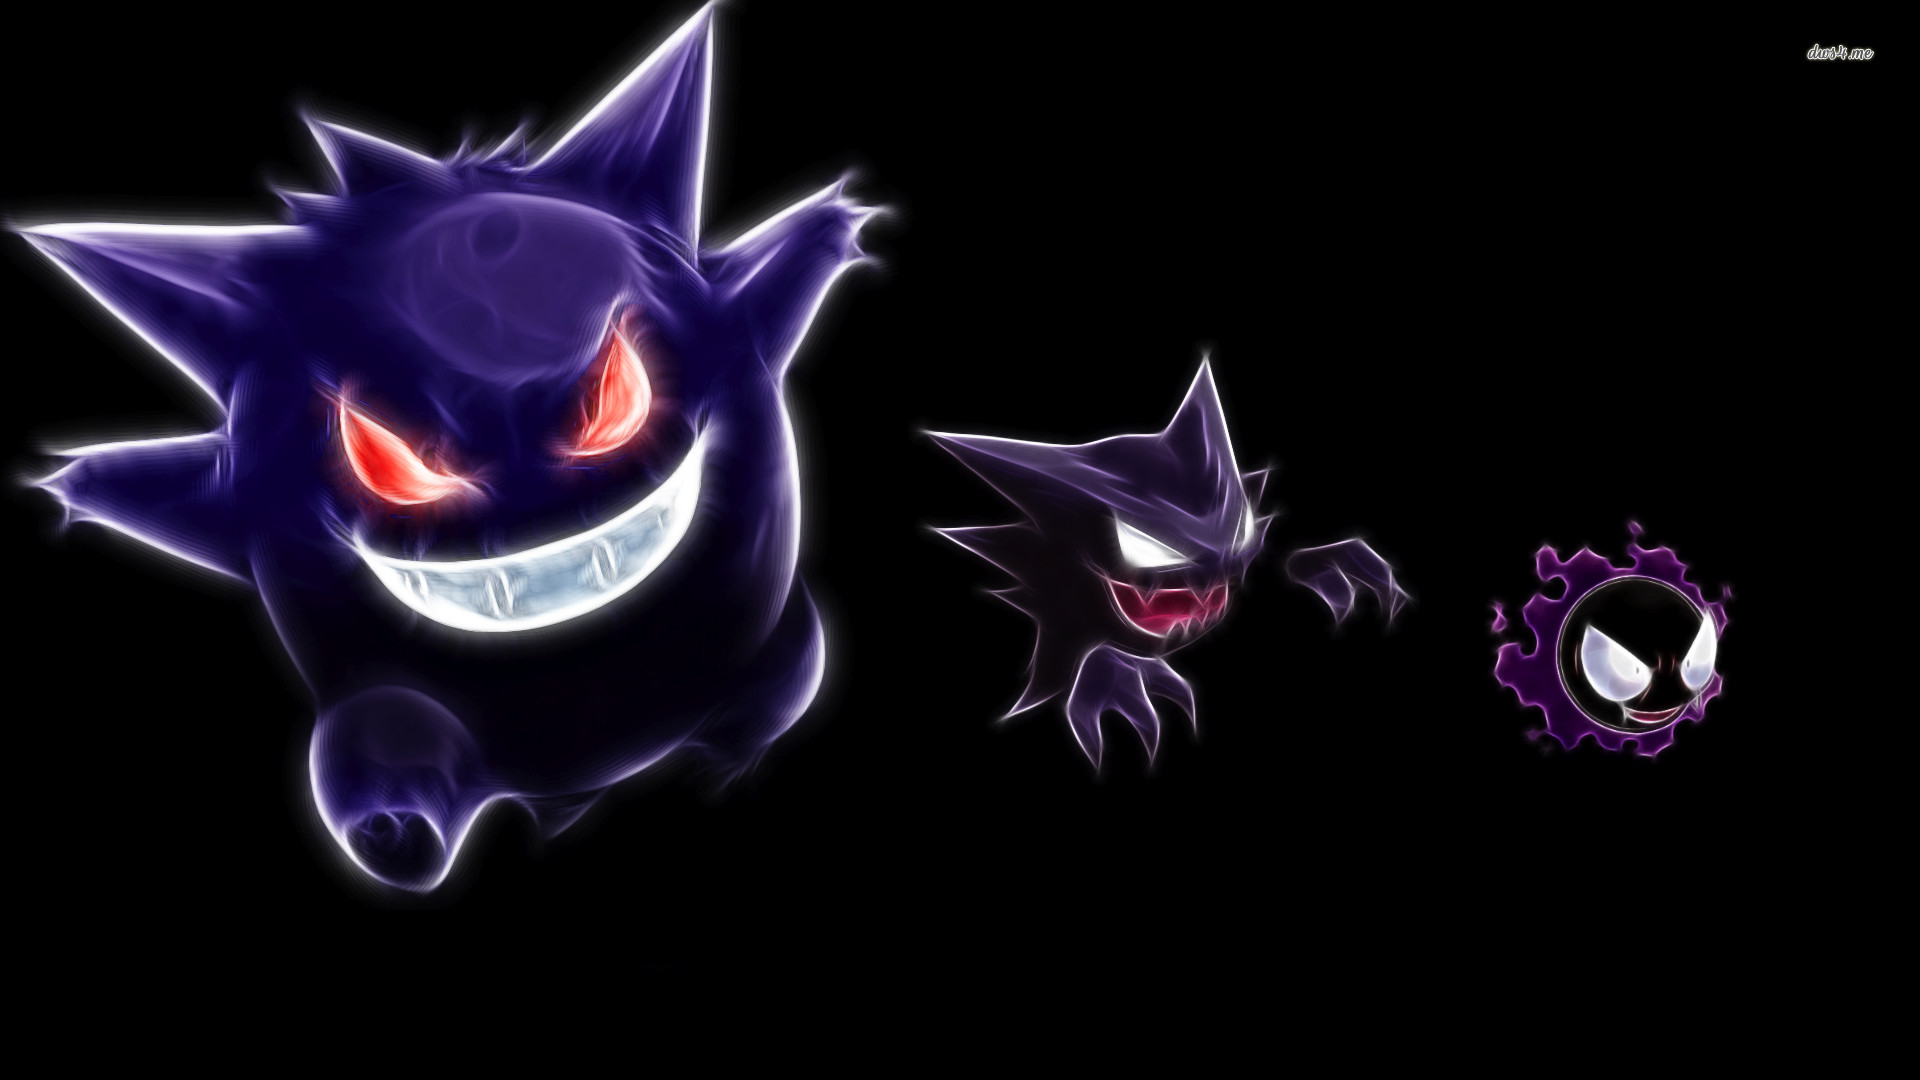 Gengar, Haunter and Gastly in Pokemon wallpaper – Game wallpapers .